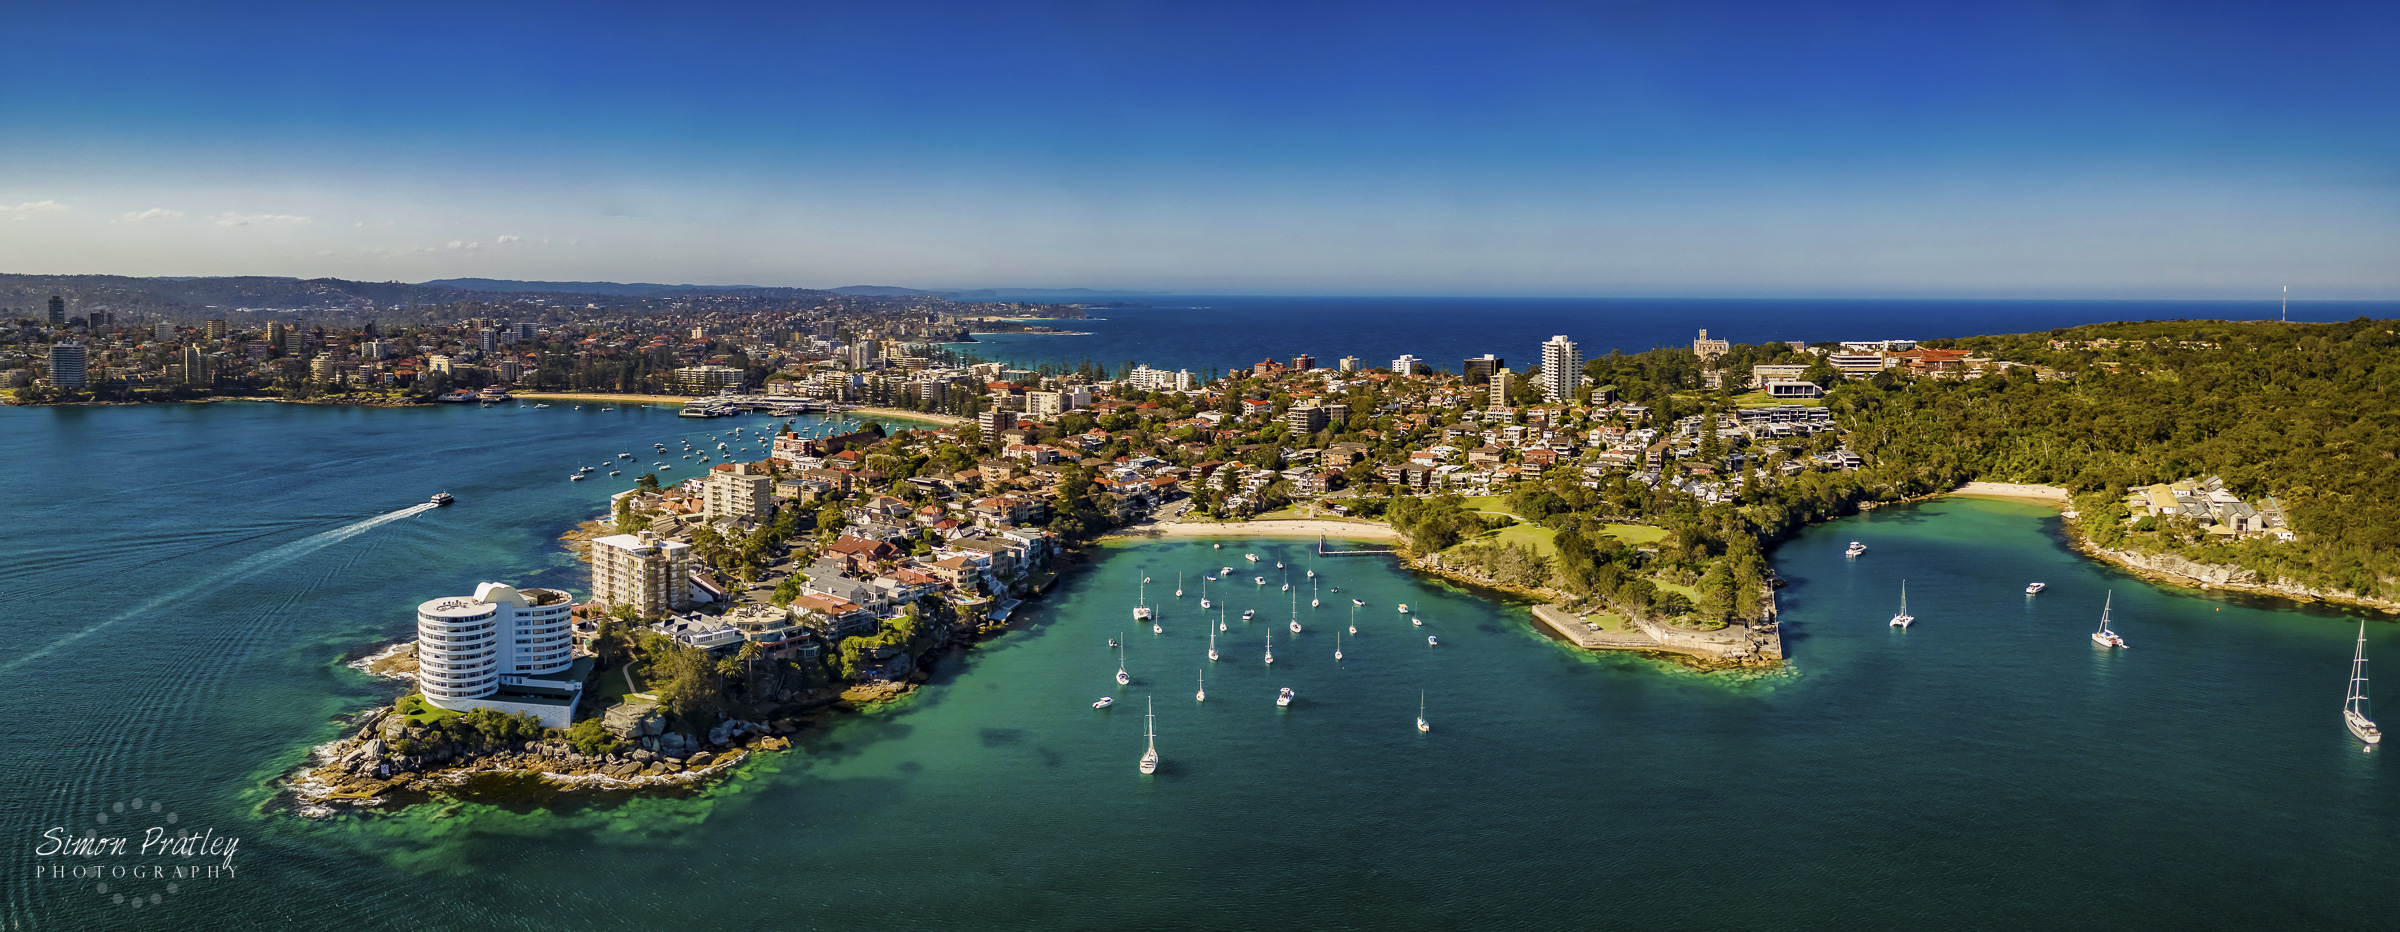 Welcome To Manly